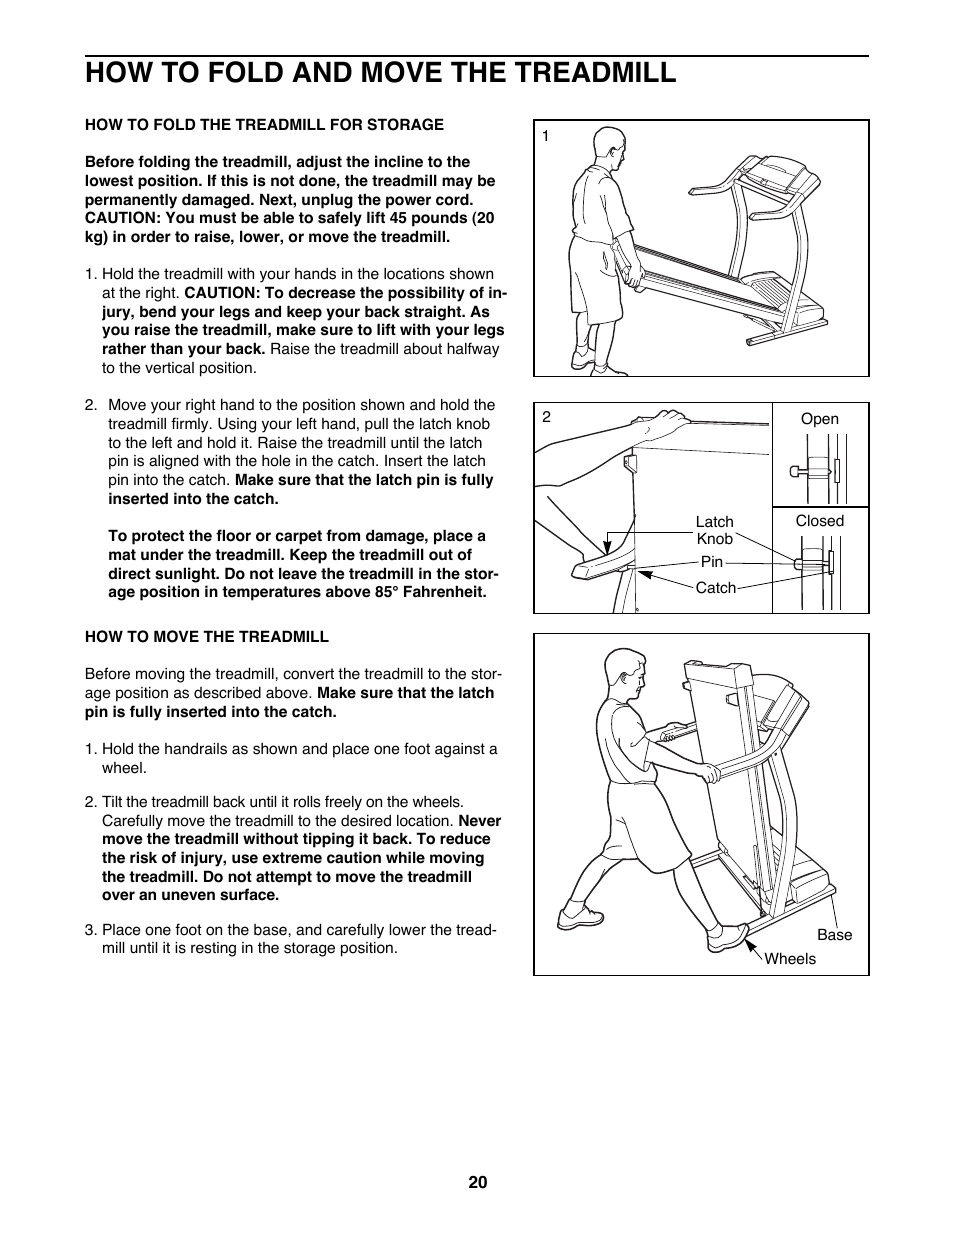 How to fold and move the treadmill | ProForm 745CS 831 299470 User